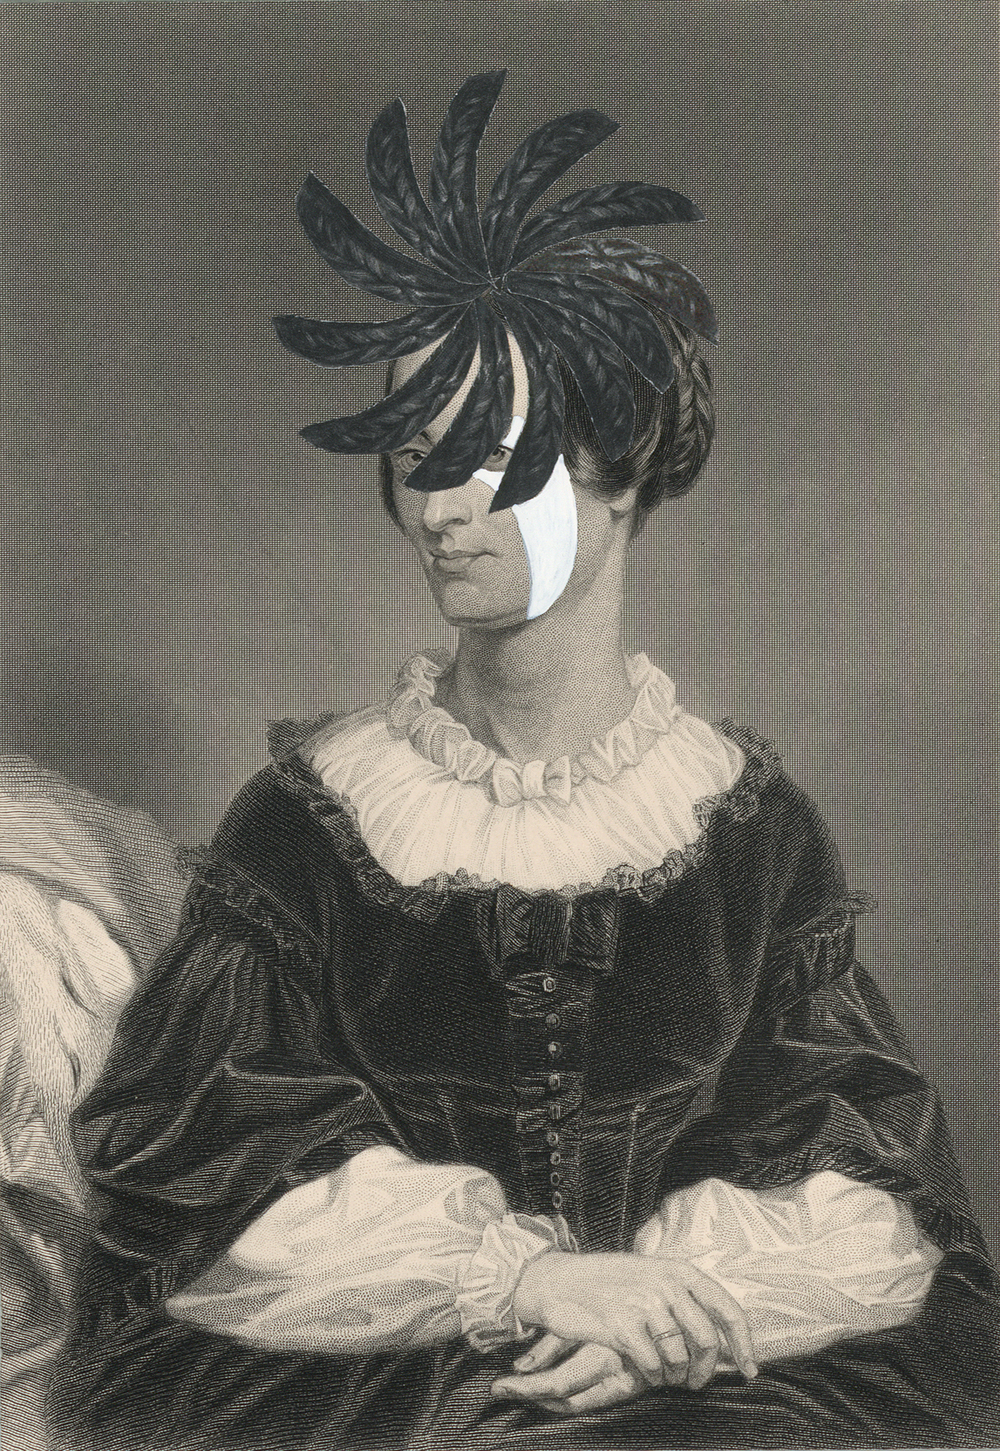 """Mrs. Jacob Brewster1859/2014  , gouache andcollage on 19th century engraving, 7"""" x 5"""", 2014"""